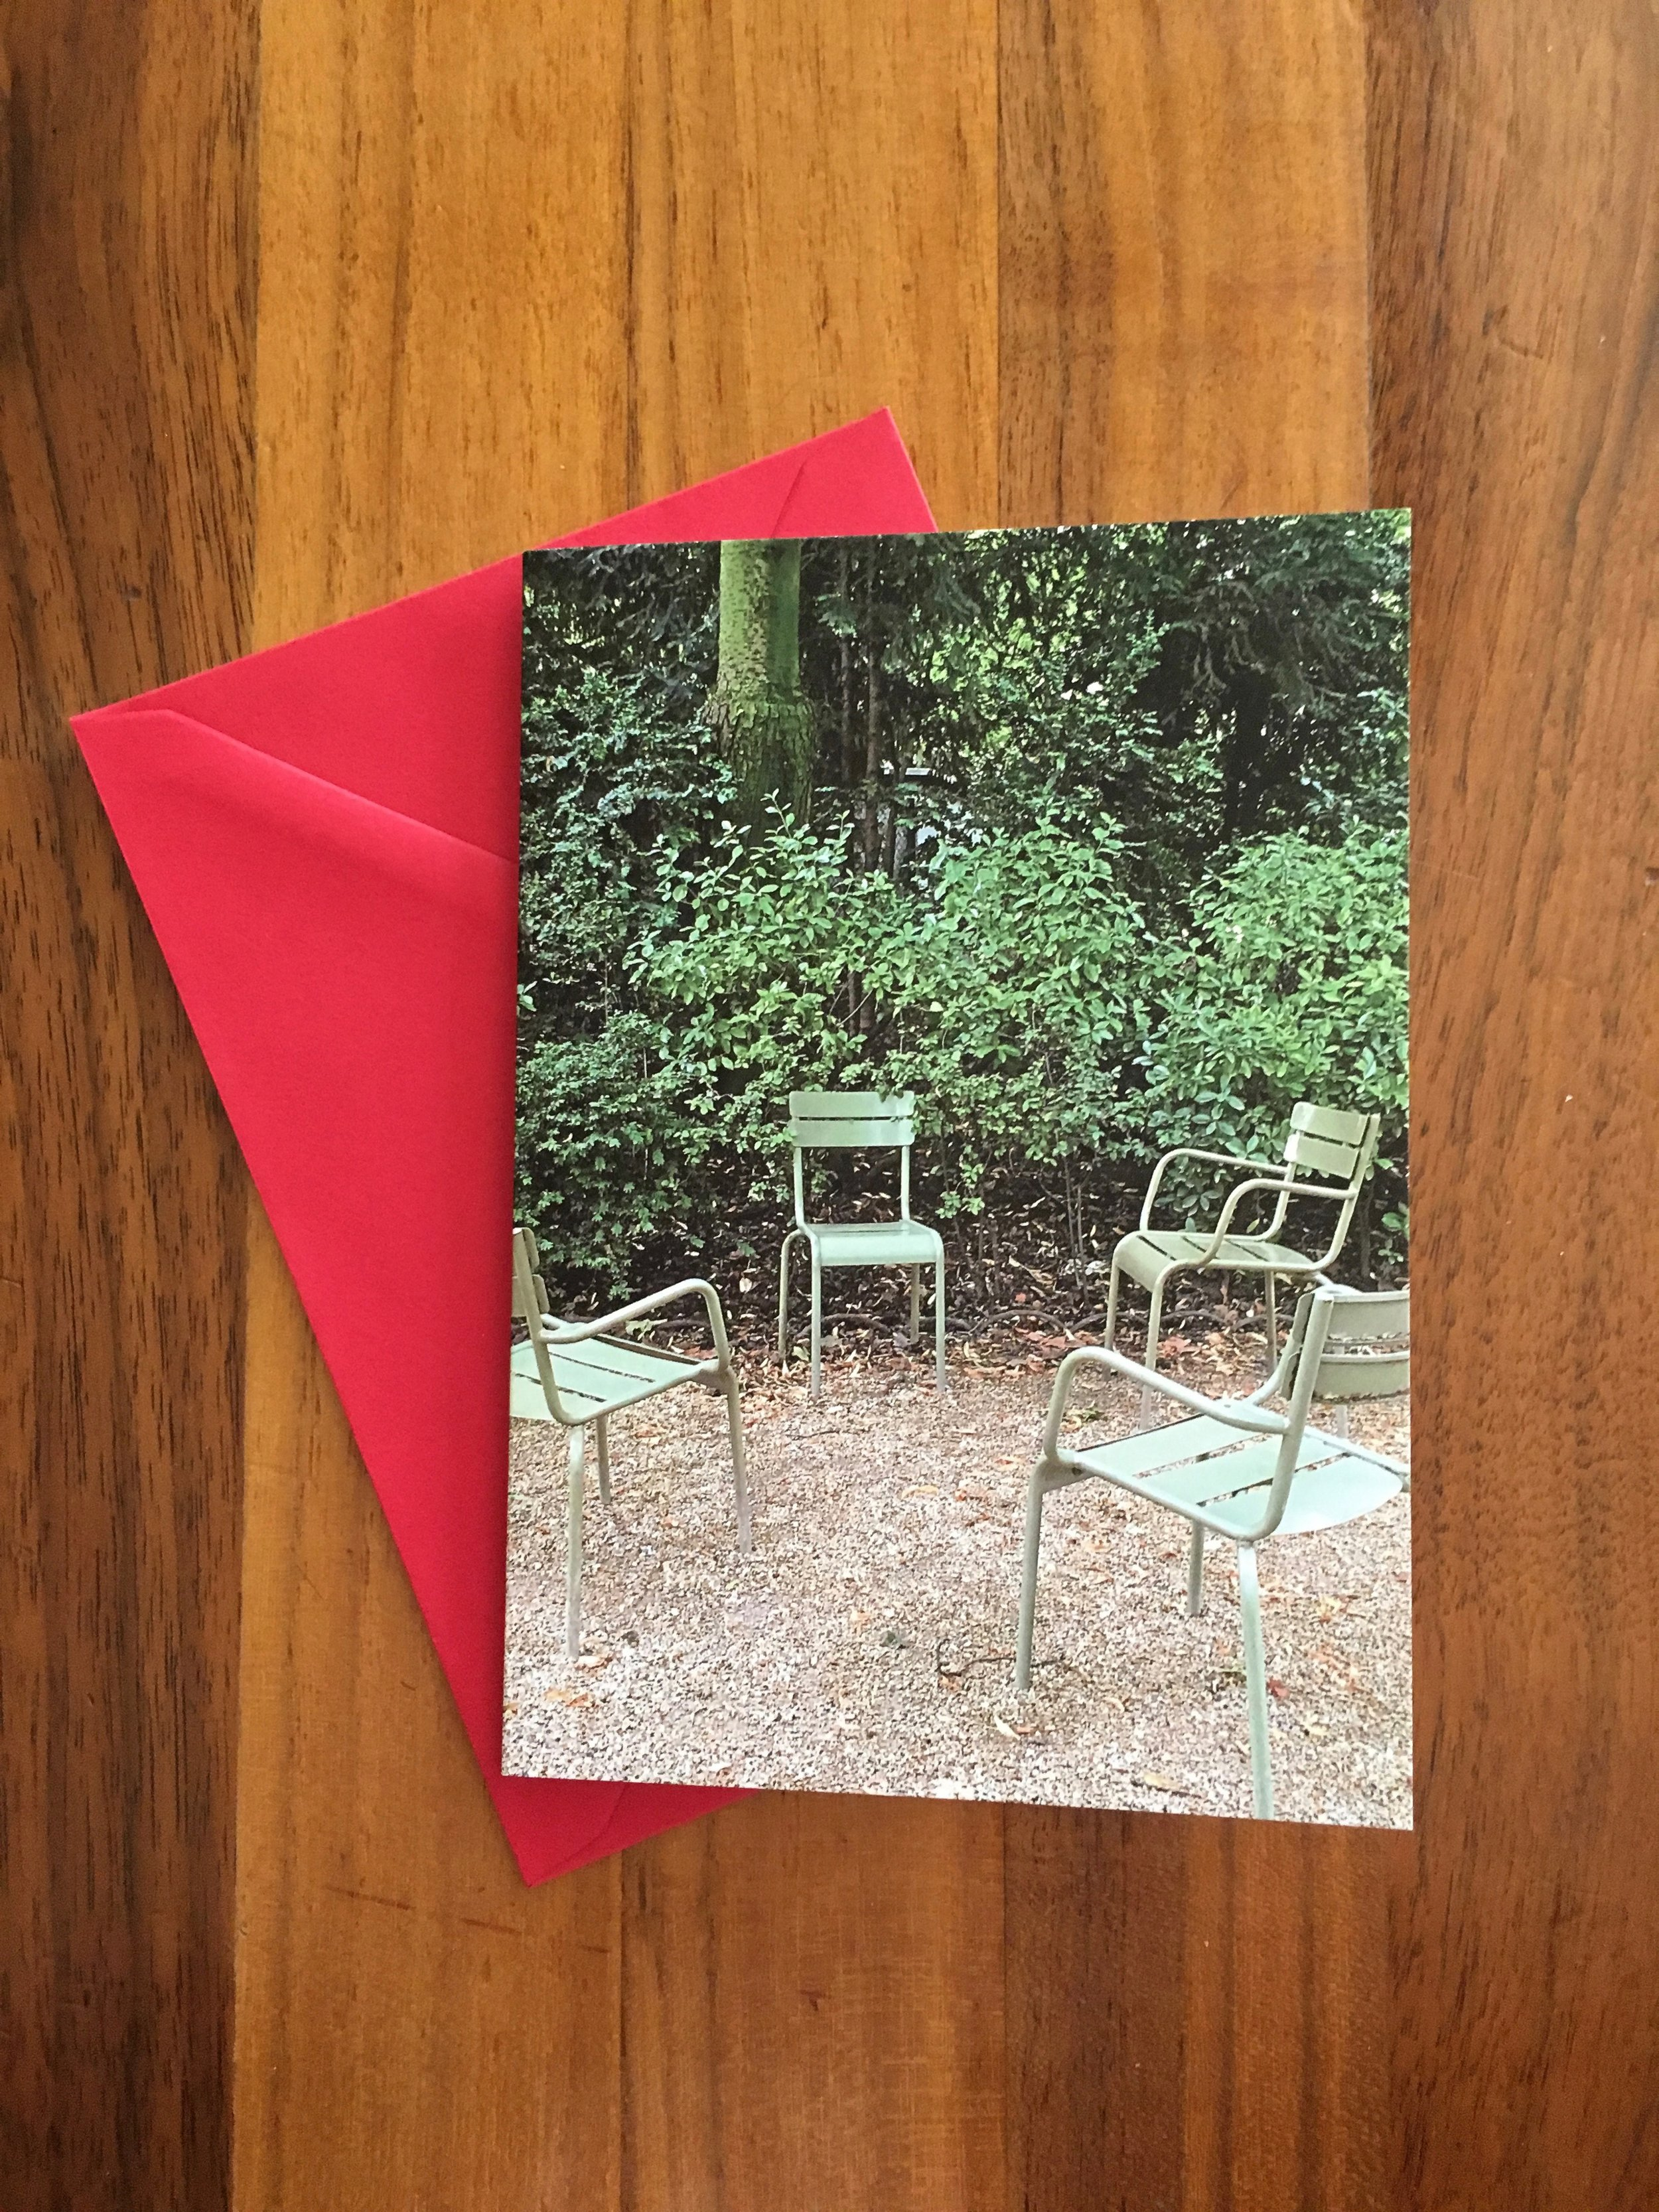 Green Chairs in the Luxembourg Gardens - Paris